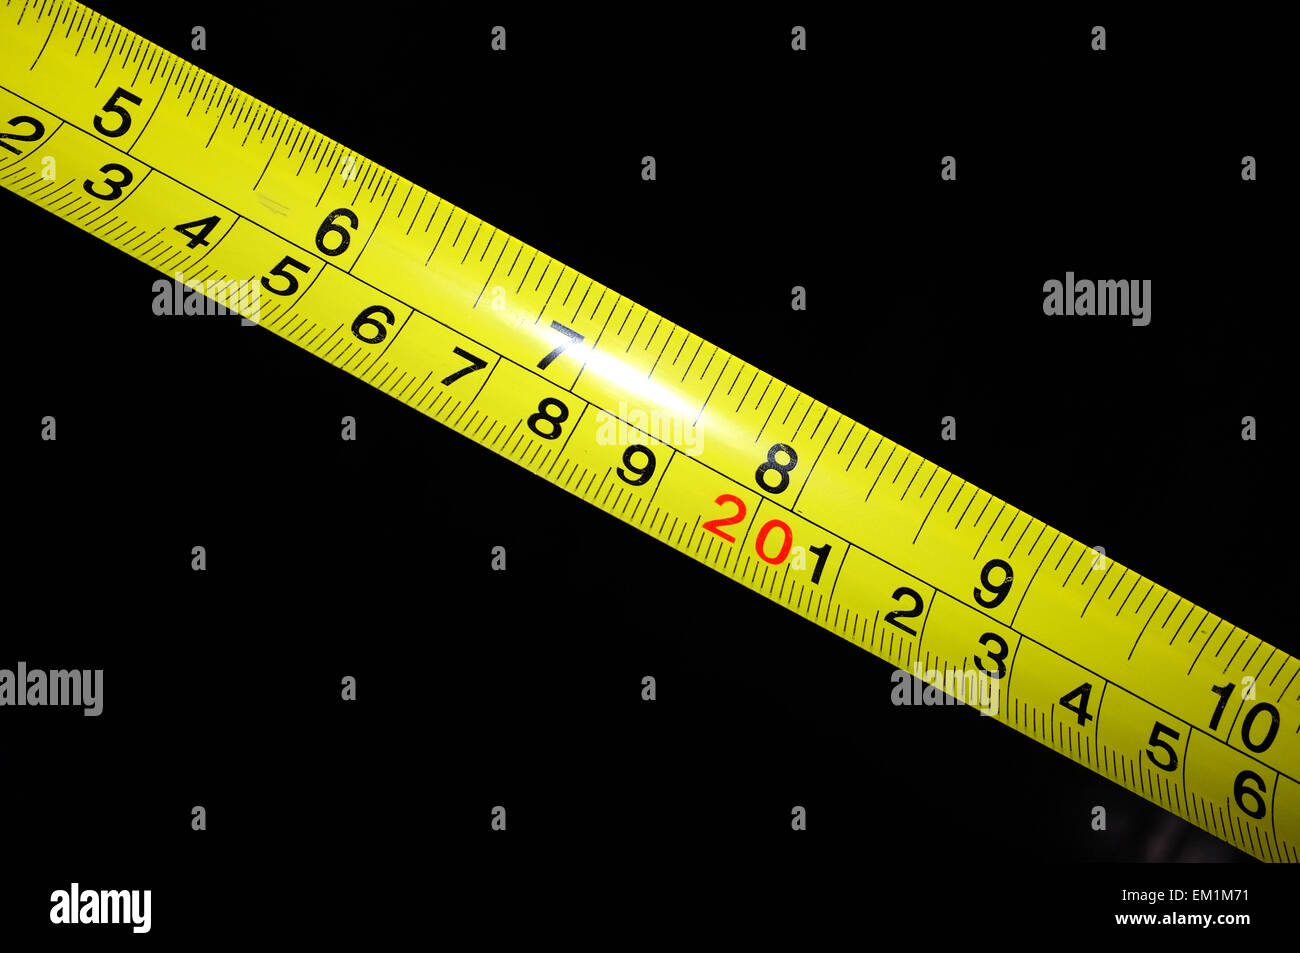 A yellow tape measure held against a black background. - Stock Image